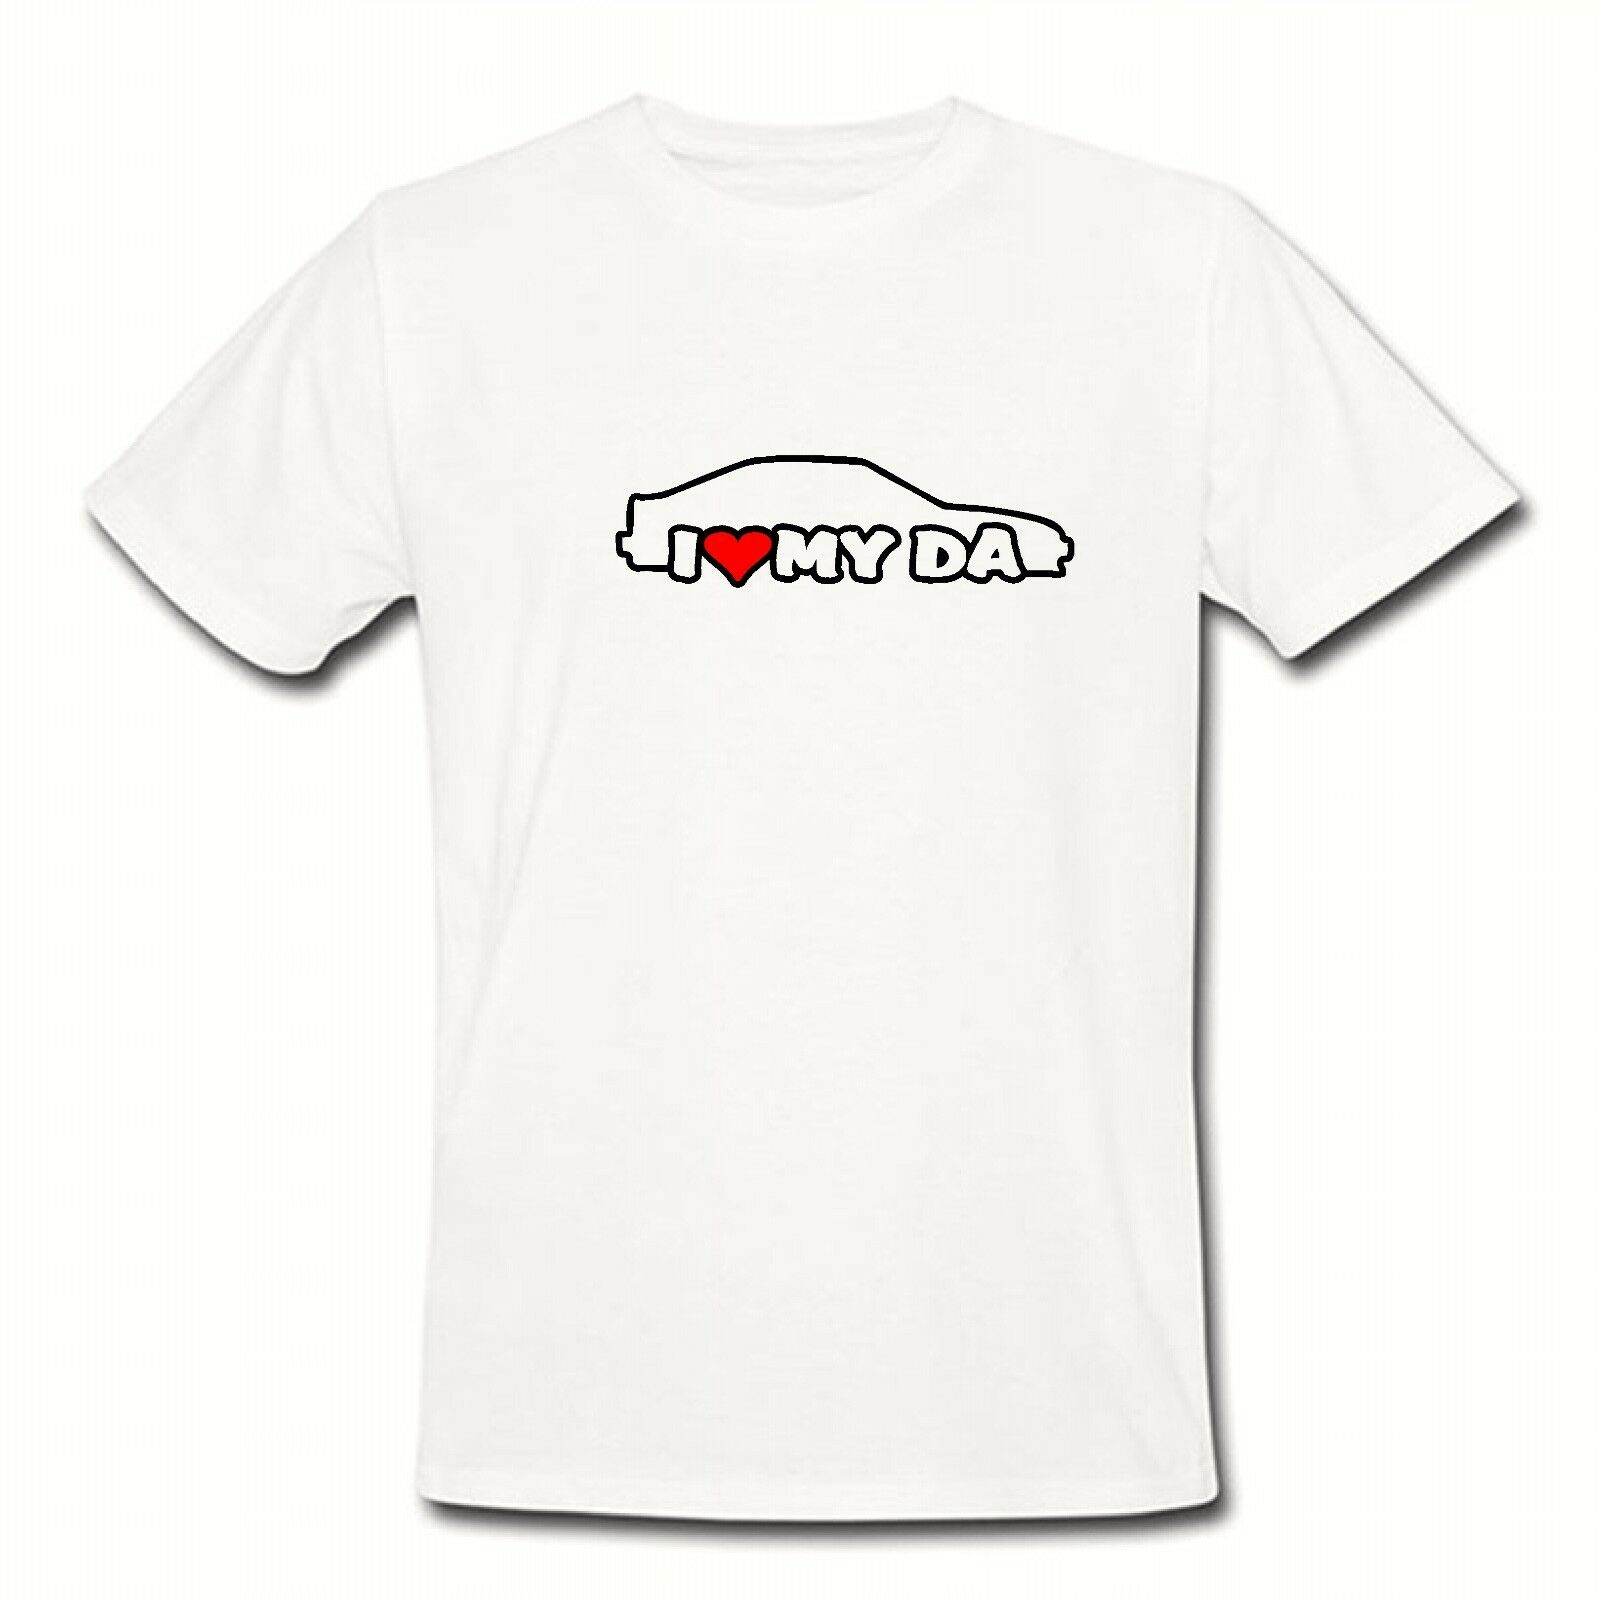 I LOVE MY DA T Shirt Tee S M L XL XL Fits Acura Integra Gs Rs Gsr - Acura shirt